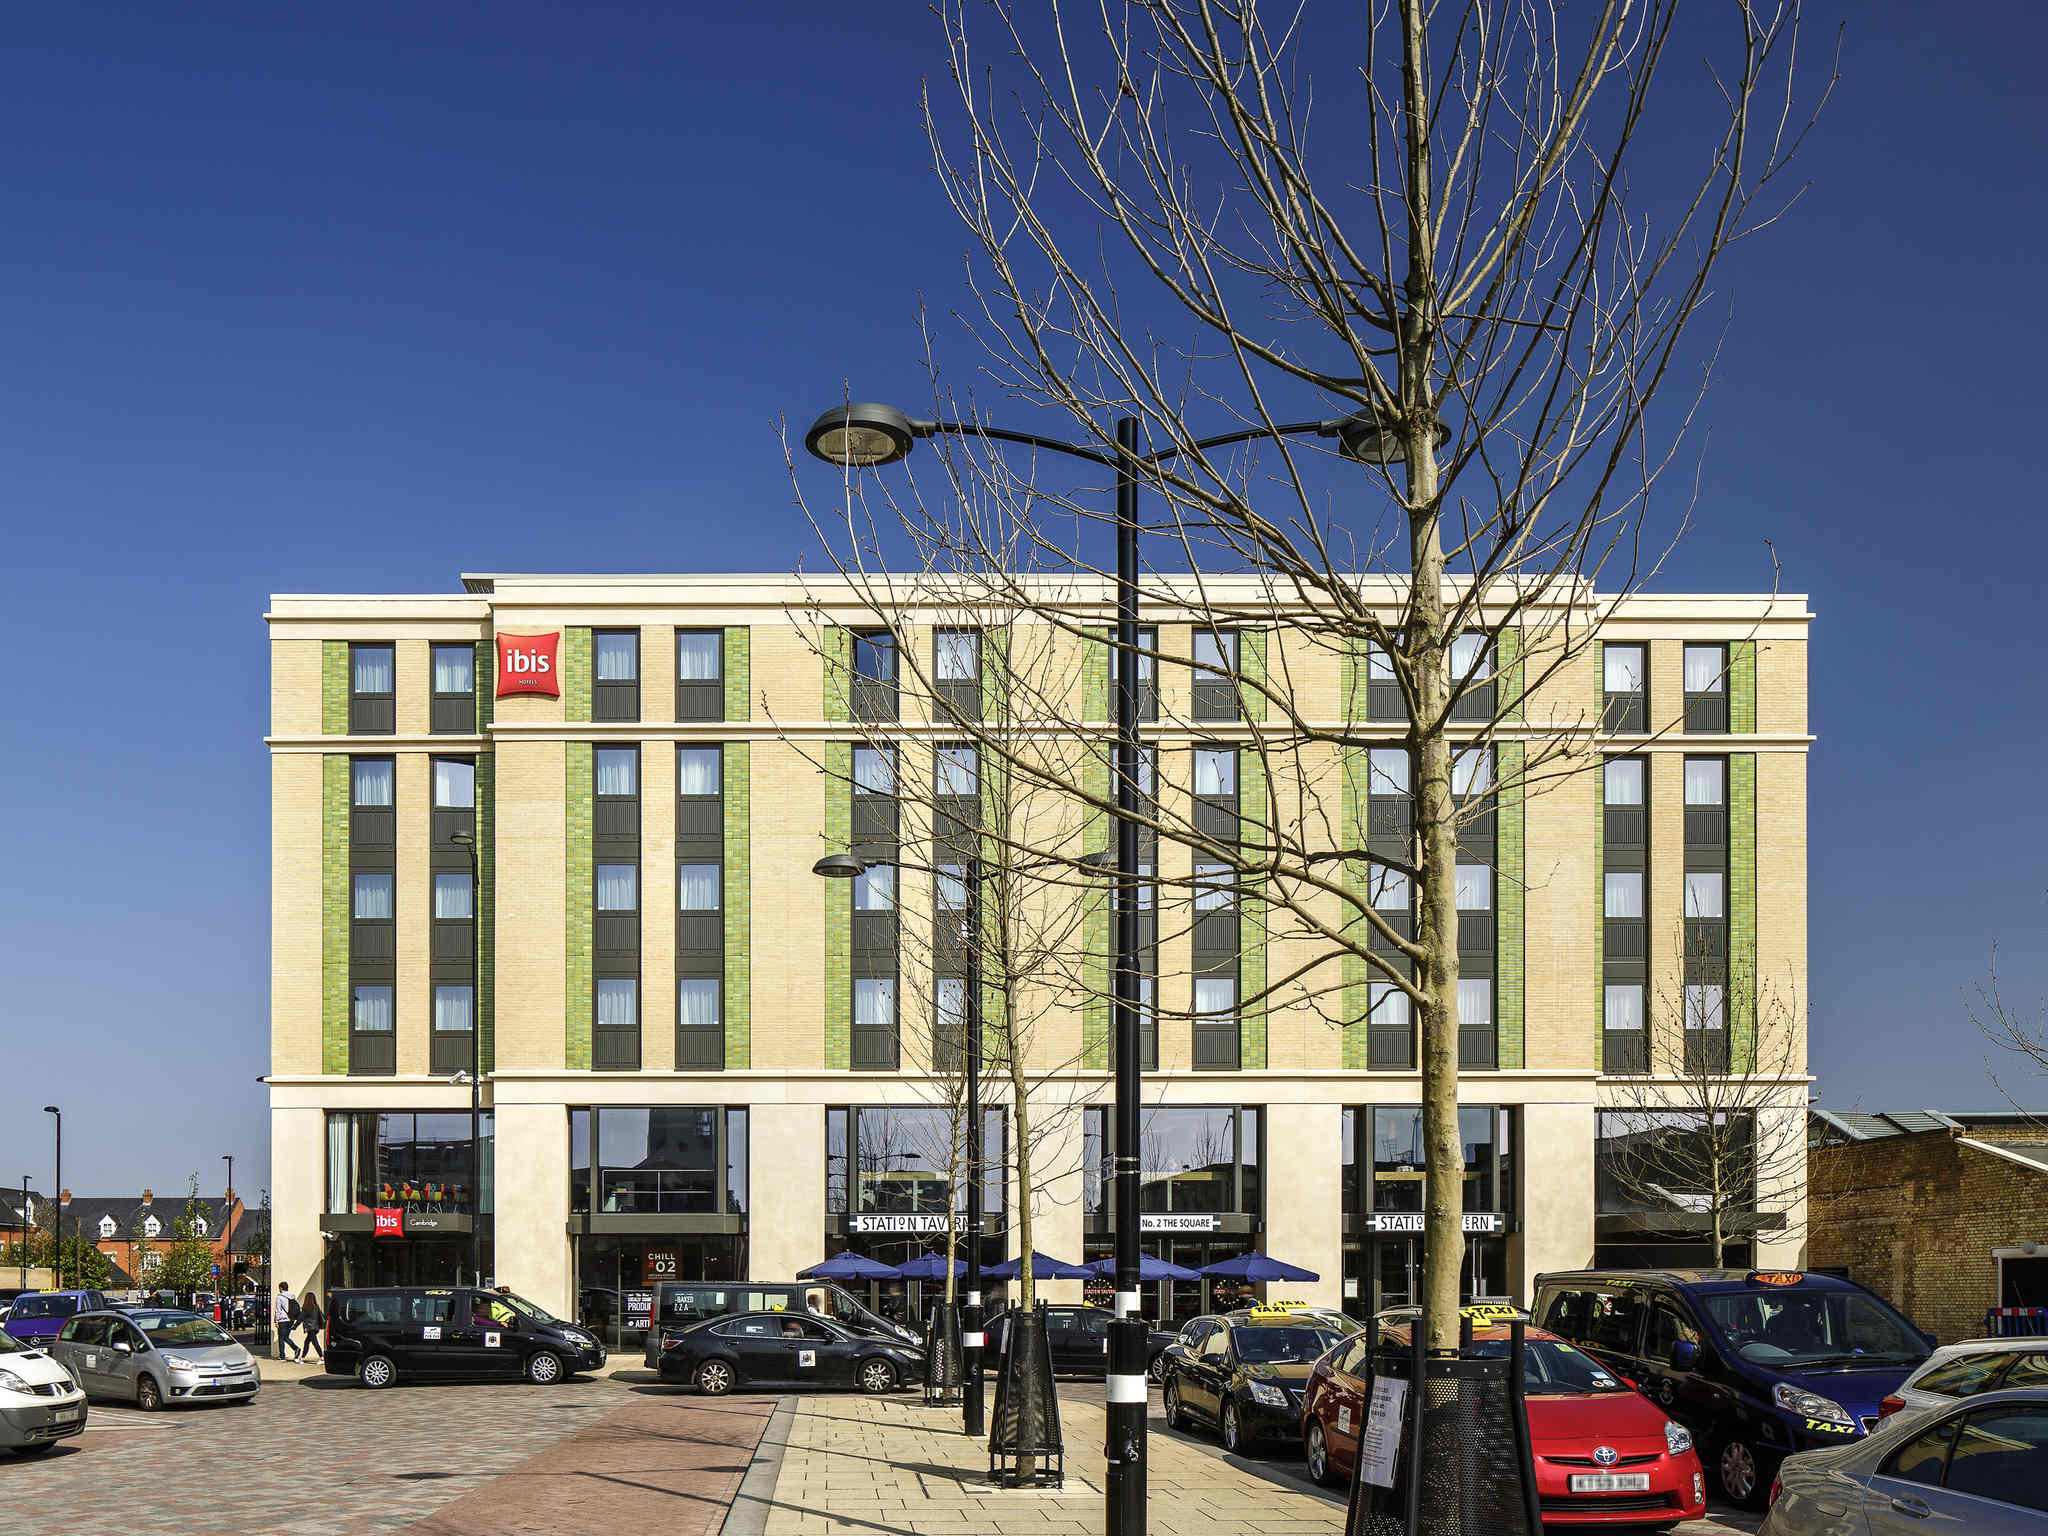 Hotel Ibis Cambridge Central Station